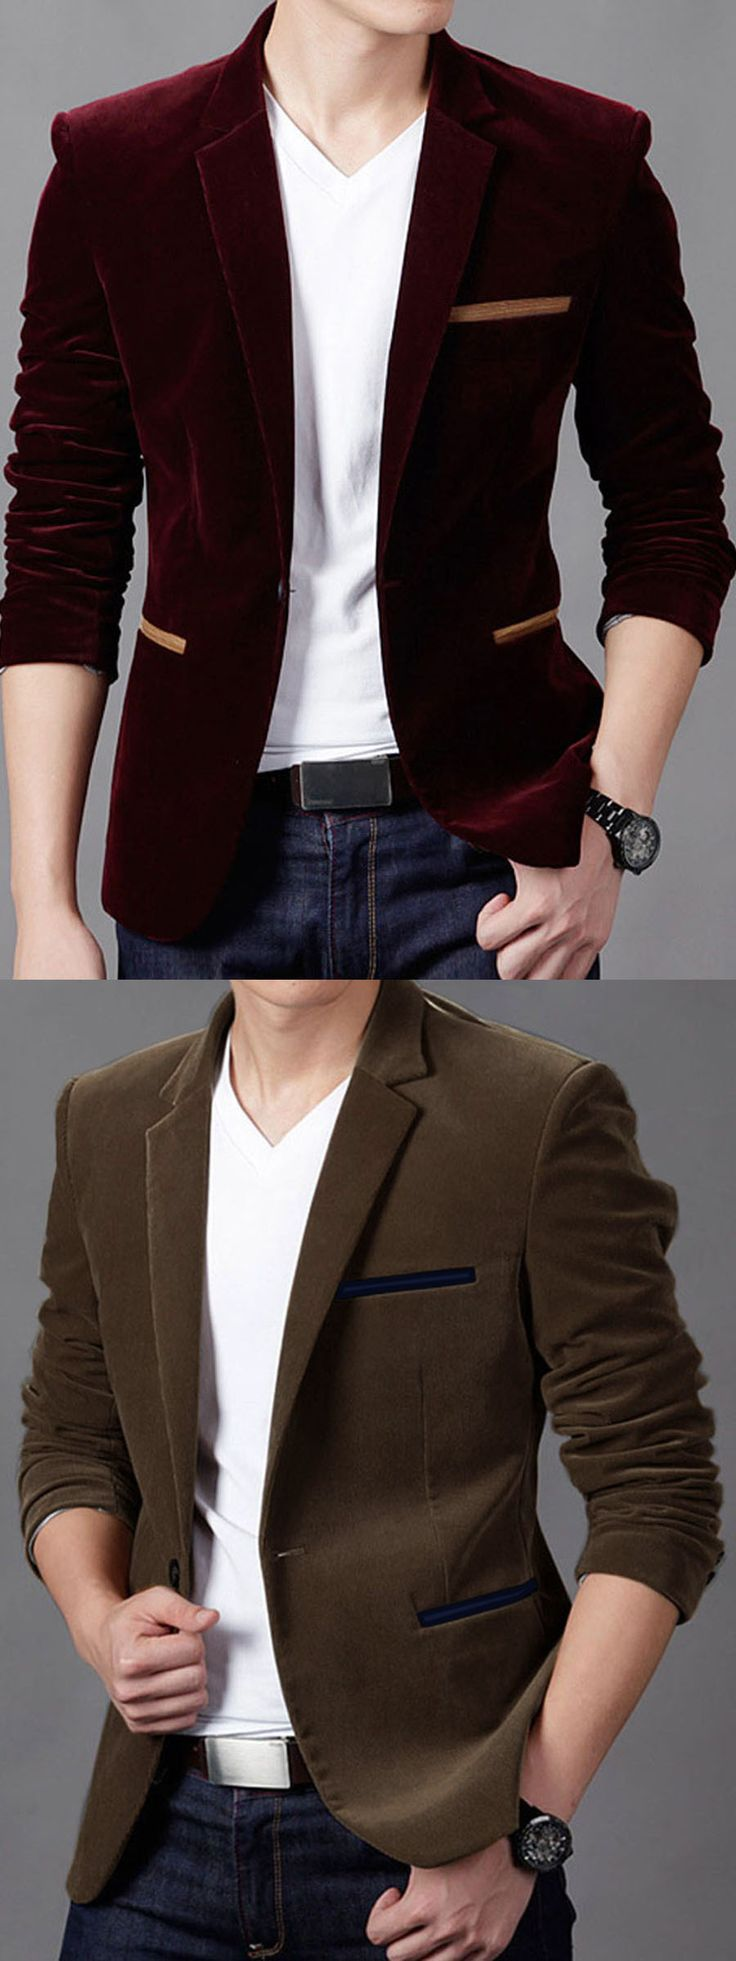 Smooth and oh-so-stylish, we're counting down the days 'til the British Style Casual Slim Fit Masculine Men's Fashion Brand Blazer is hanging in our closets!